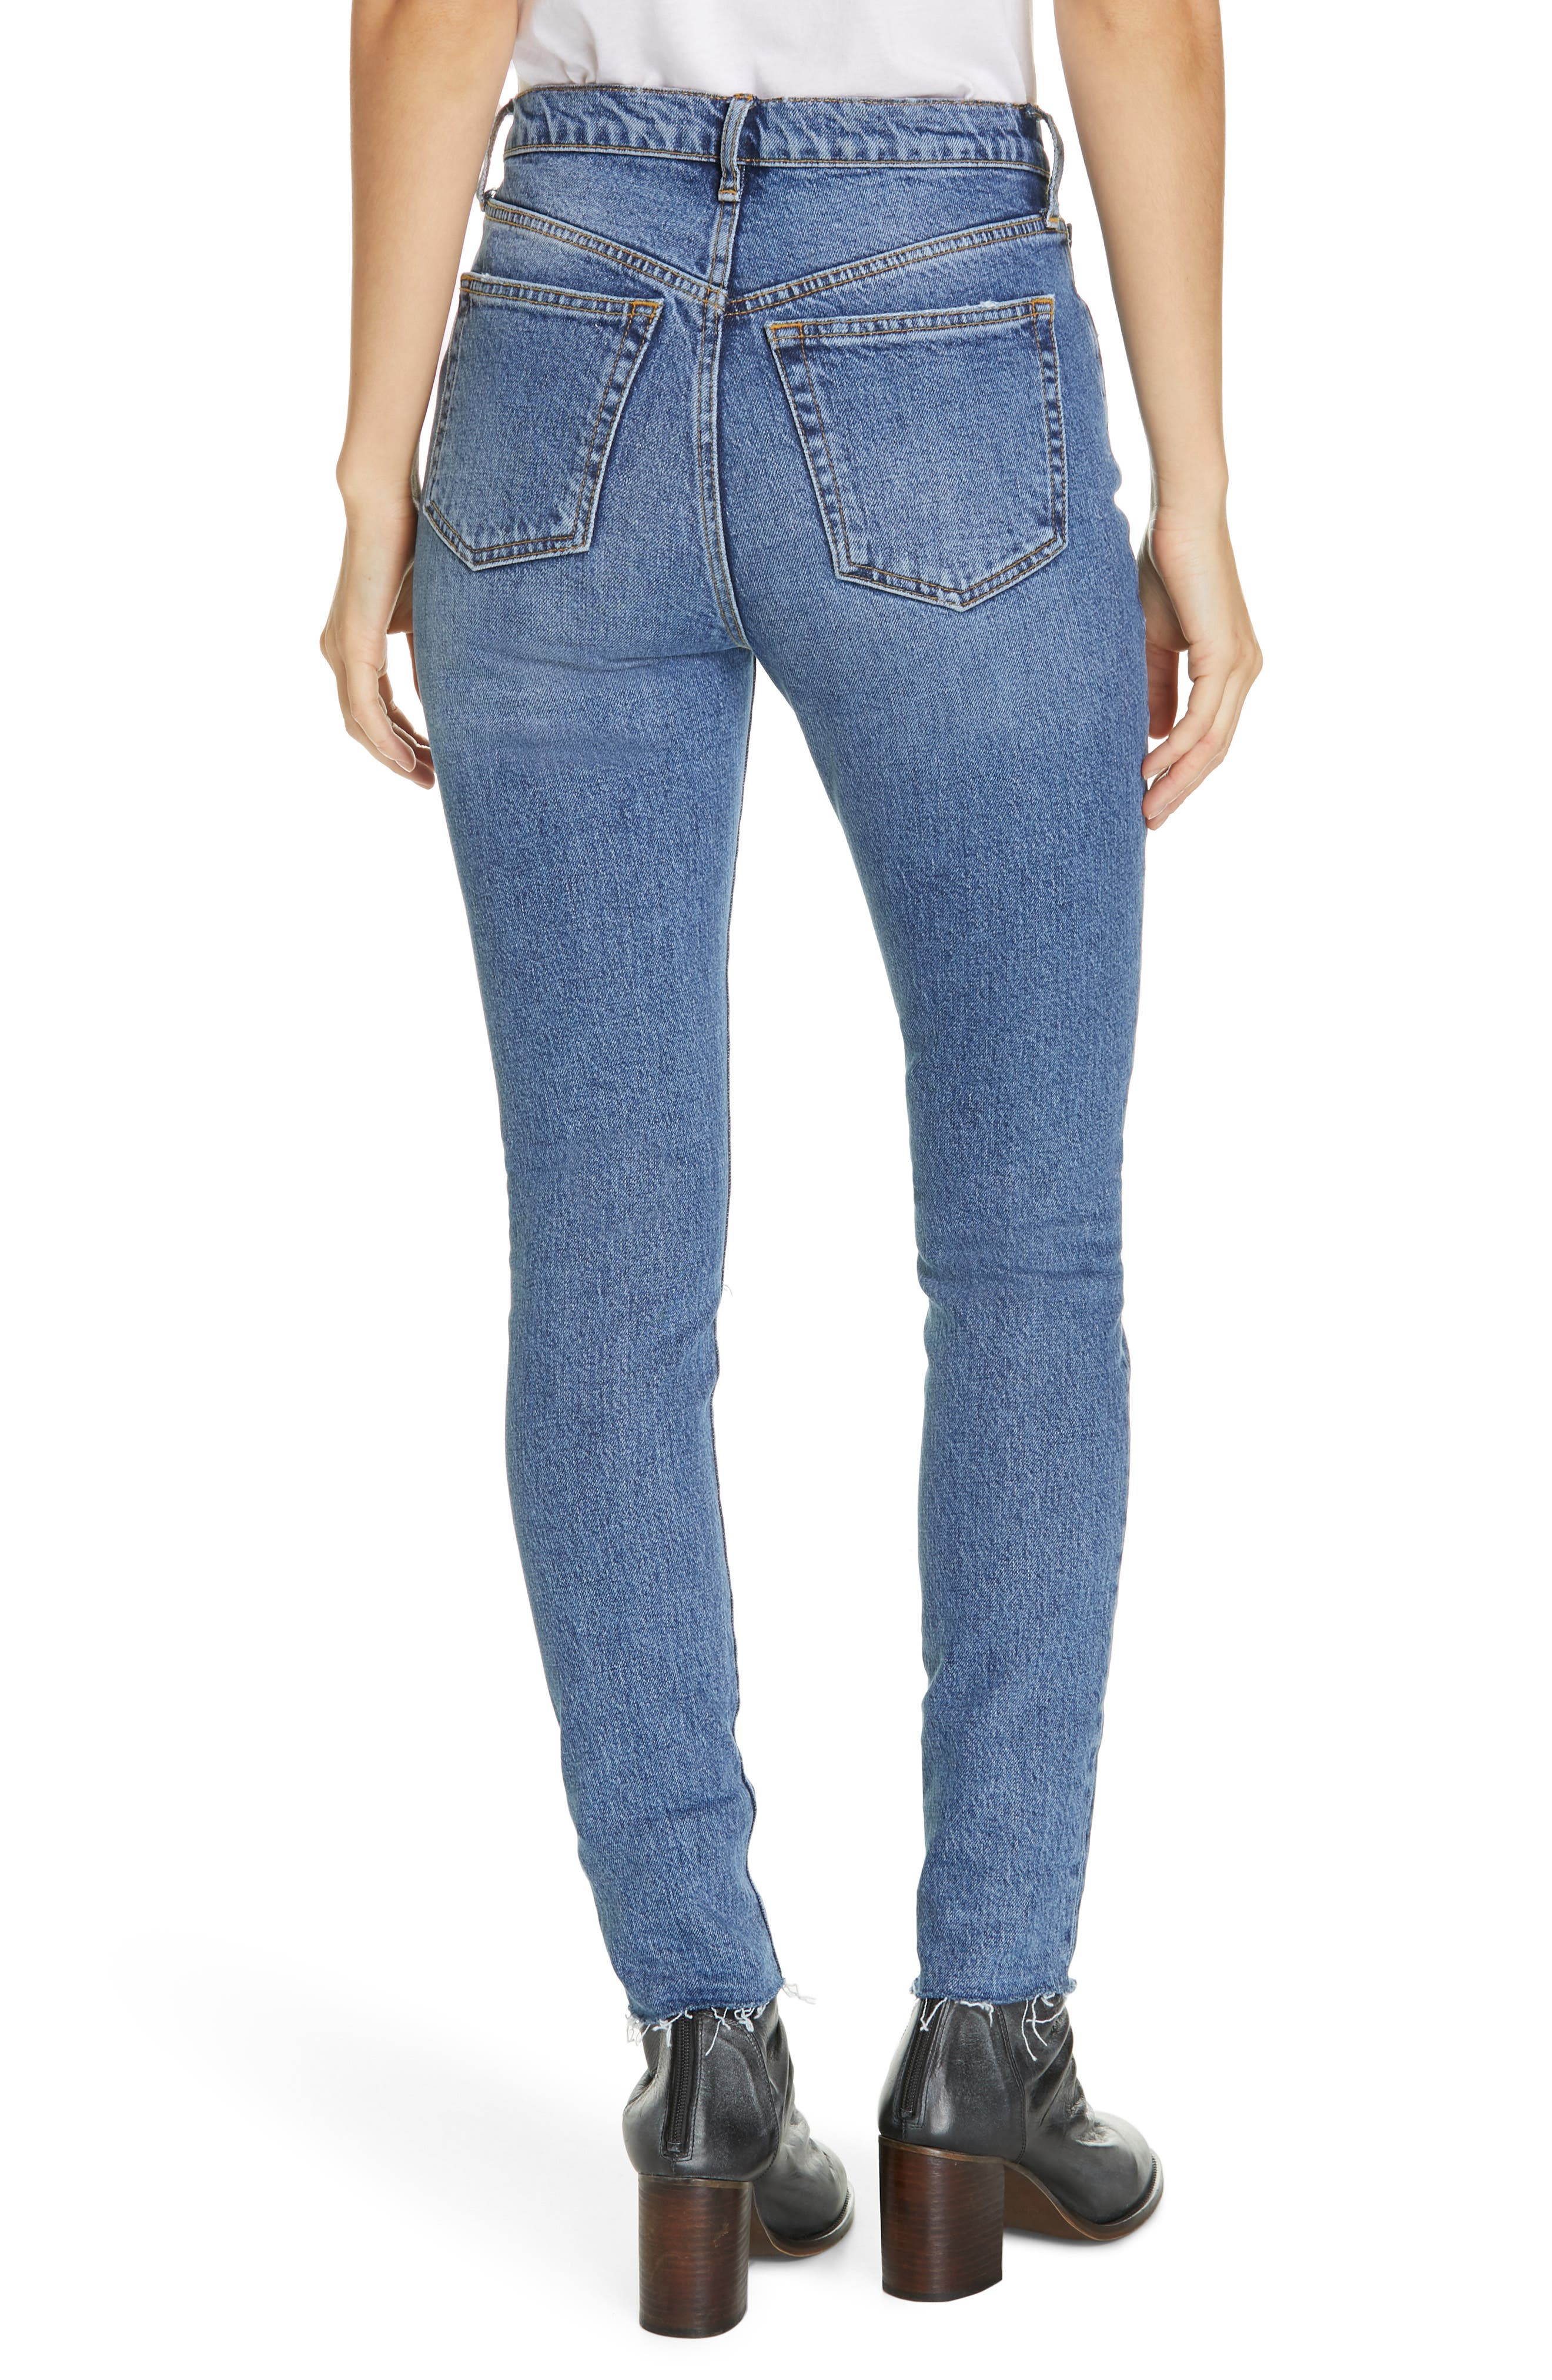 We the Free by Free People Stella High Waist Raw Hem Skinny Jeans,                             Alternate thumbnail 2, color,                             DARK BLUE